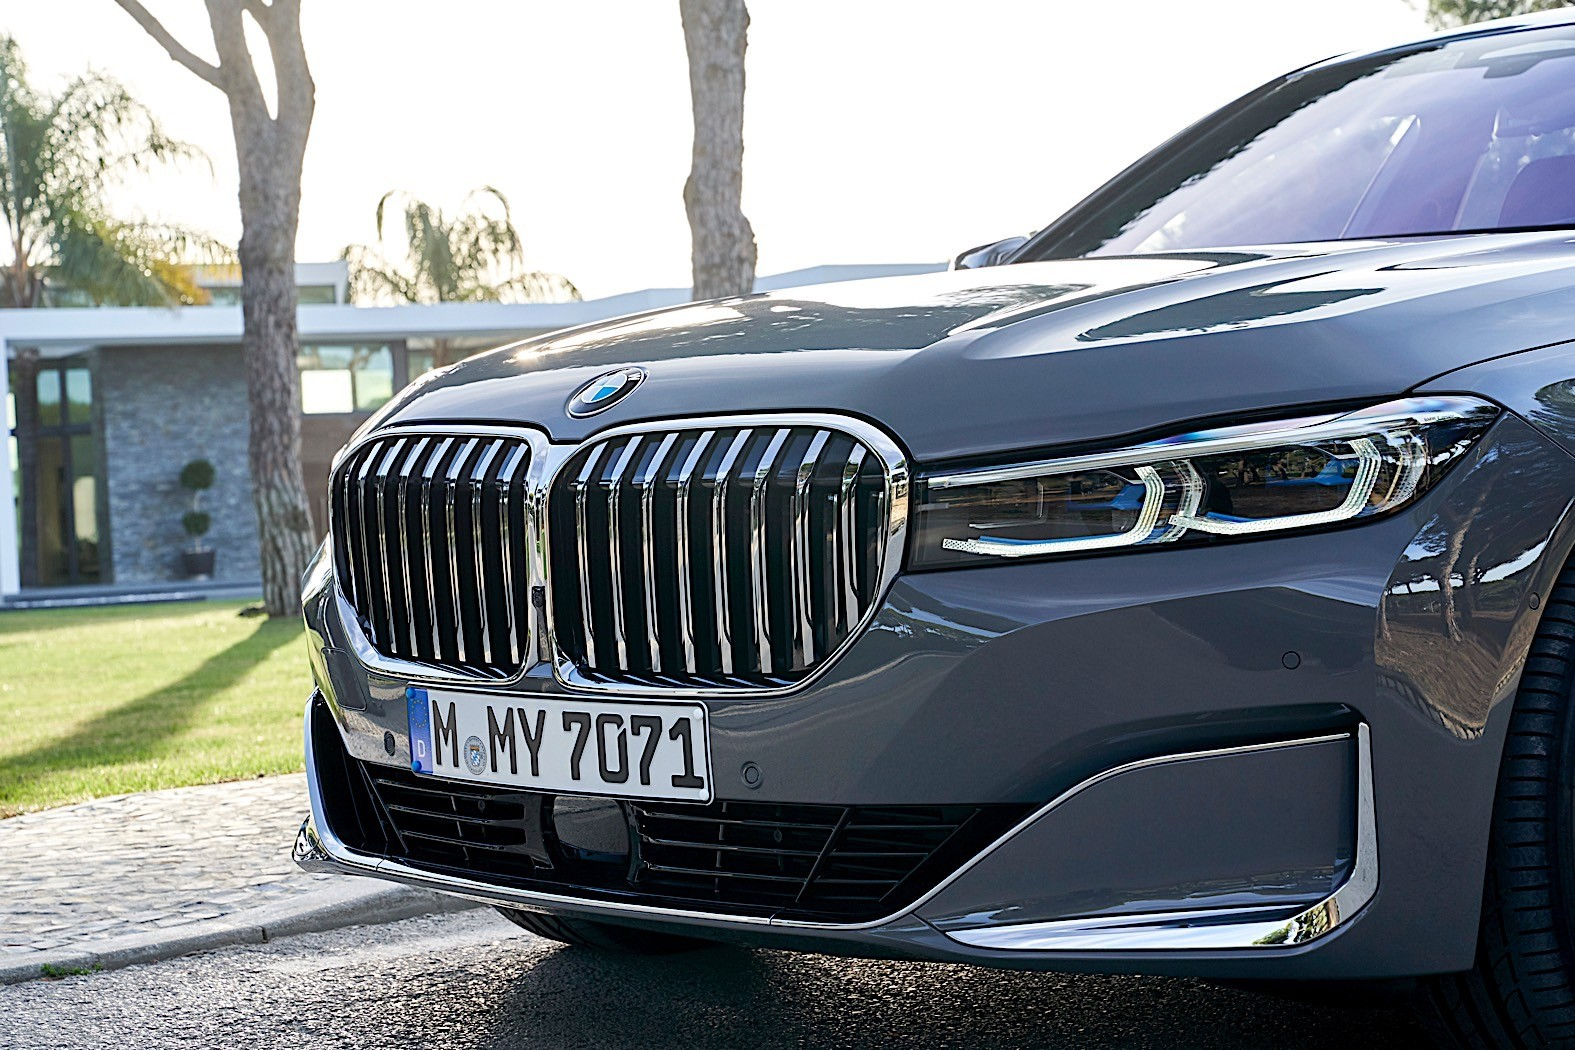 2020 BMW 7 Series Looks Huge in Extensive New Image ...